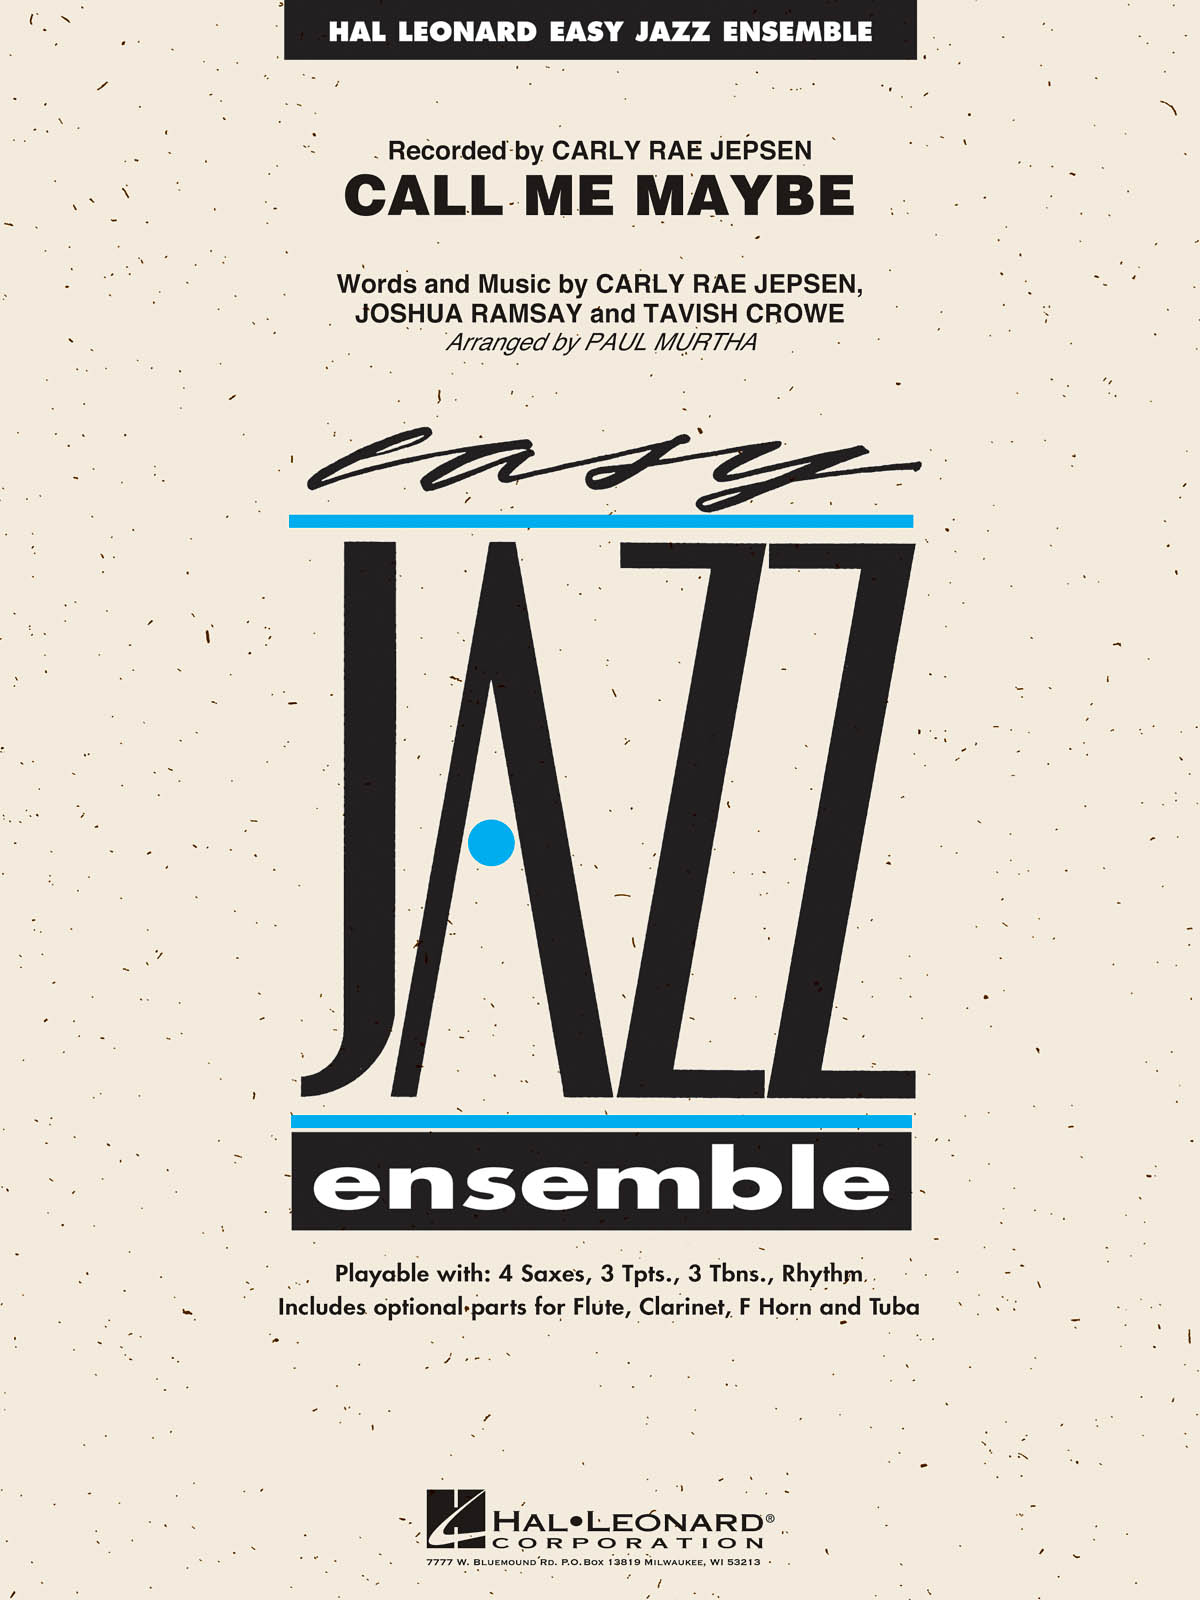 Call Me Maybe: Easy Jazz Ensemble